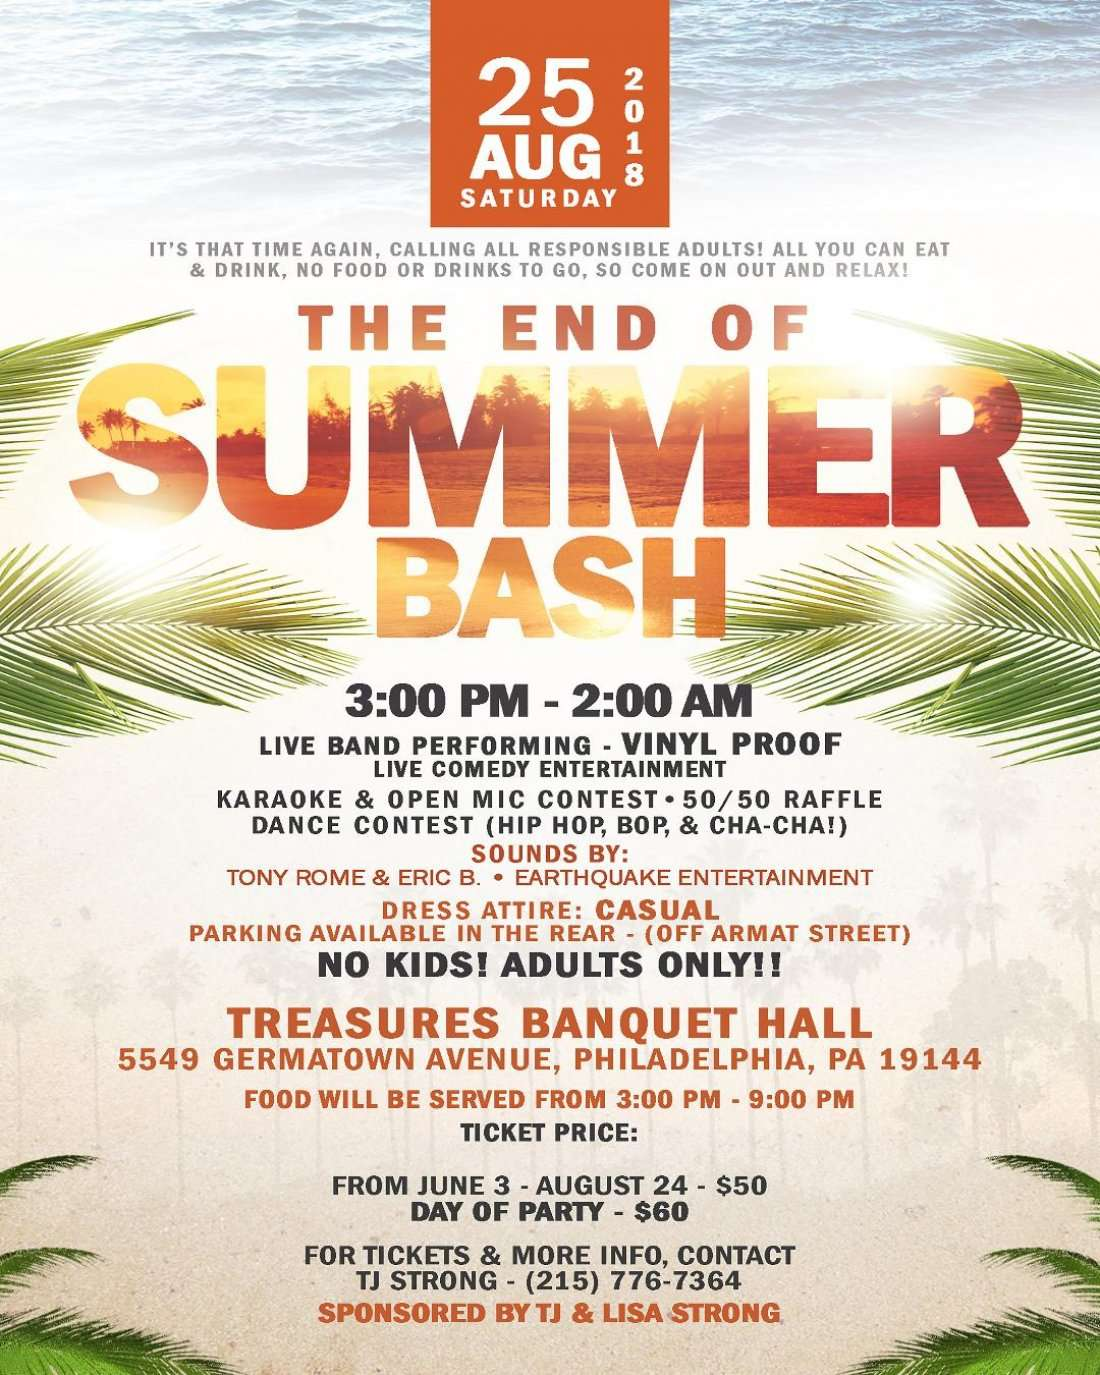 The End of the Summer Bash